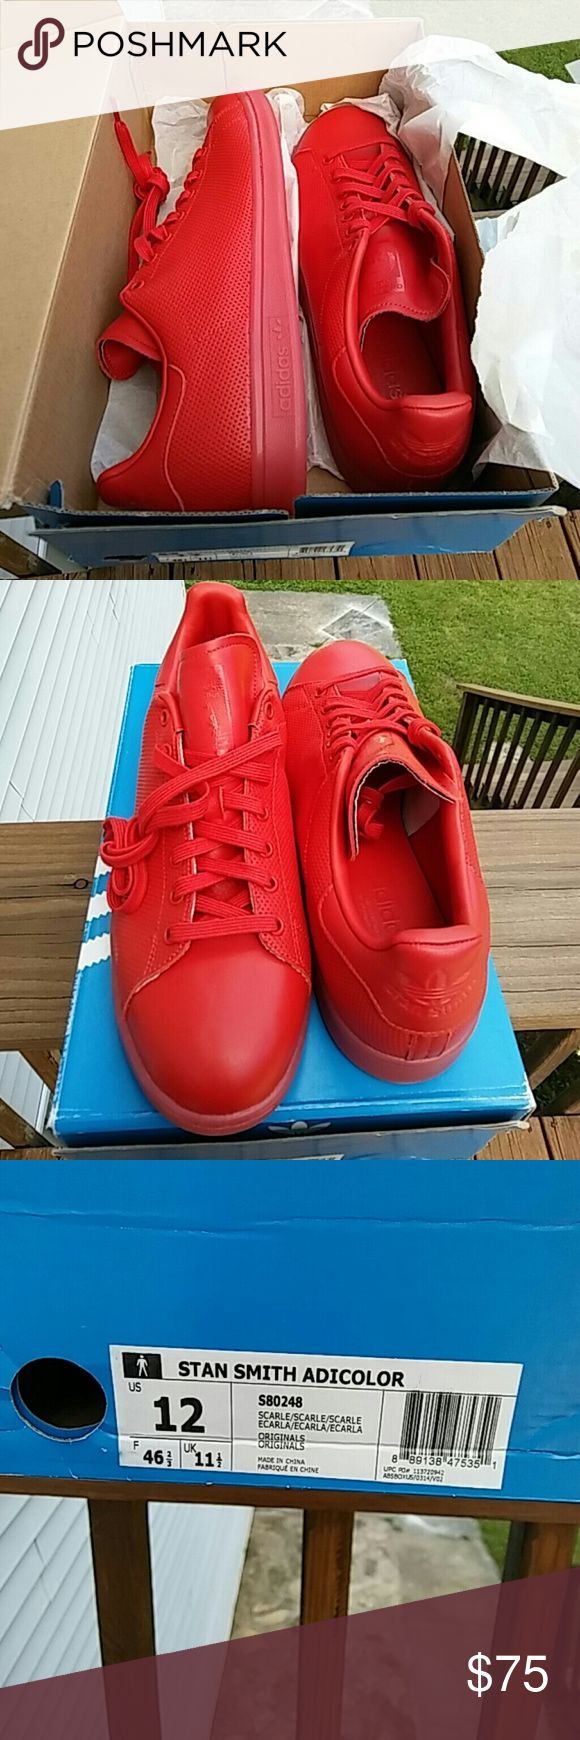 Mens adidas sz 12 stan smith adicolor- red nwts Adidas Stan Smith Adicolor Men's Size 8.5, nwts, color red, message for questions    STYLE NUMBER:?S80248   COLOR:?Scarlet Red   CONDITION:?Brand New?   COMES WITH:??  Original Adidas Shoe Box    Shoes will be double boxed. I only accept payments via Pay Pal, shoes will ship either the same day or the day after payment is?received. Monday-Saturday. Tracking number will be provided.?   International Buyers are responsible for customs taxes and…